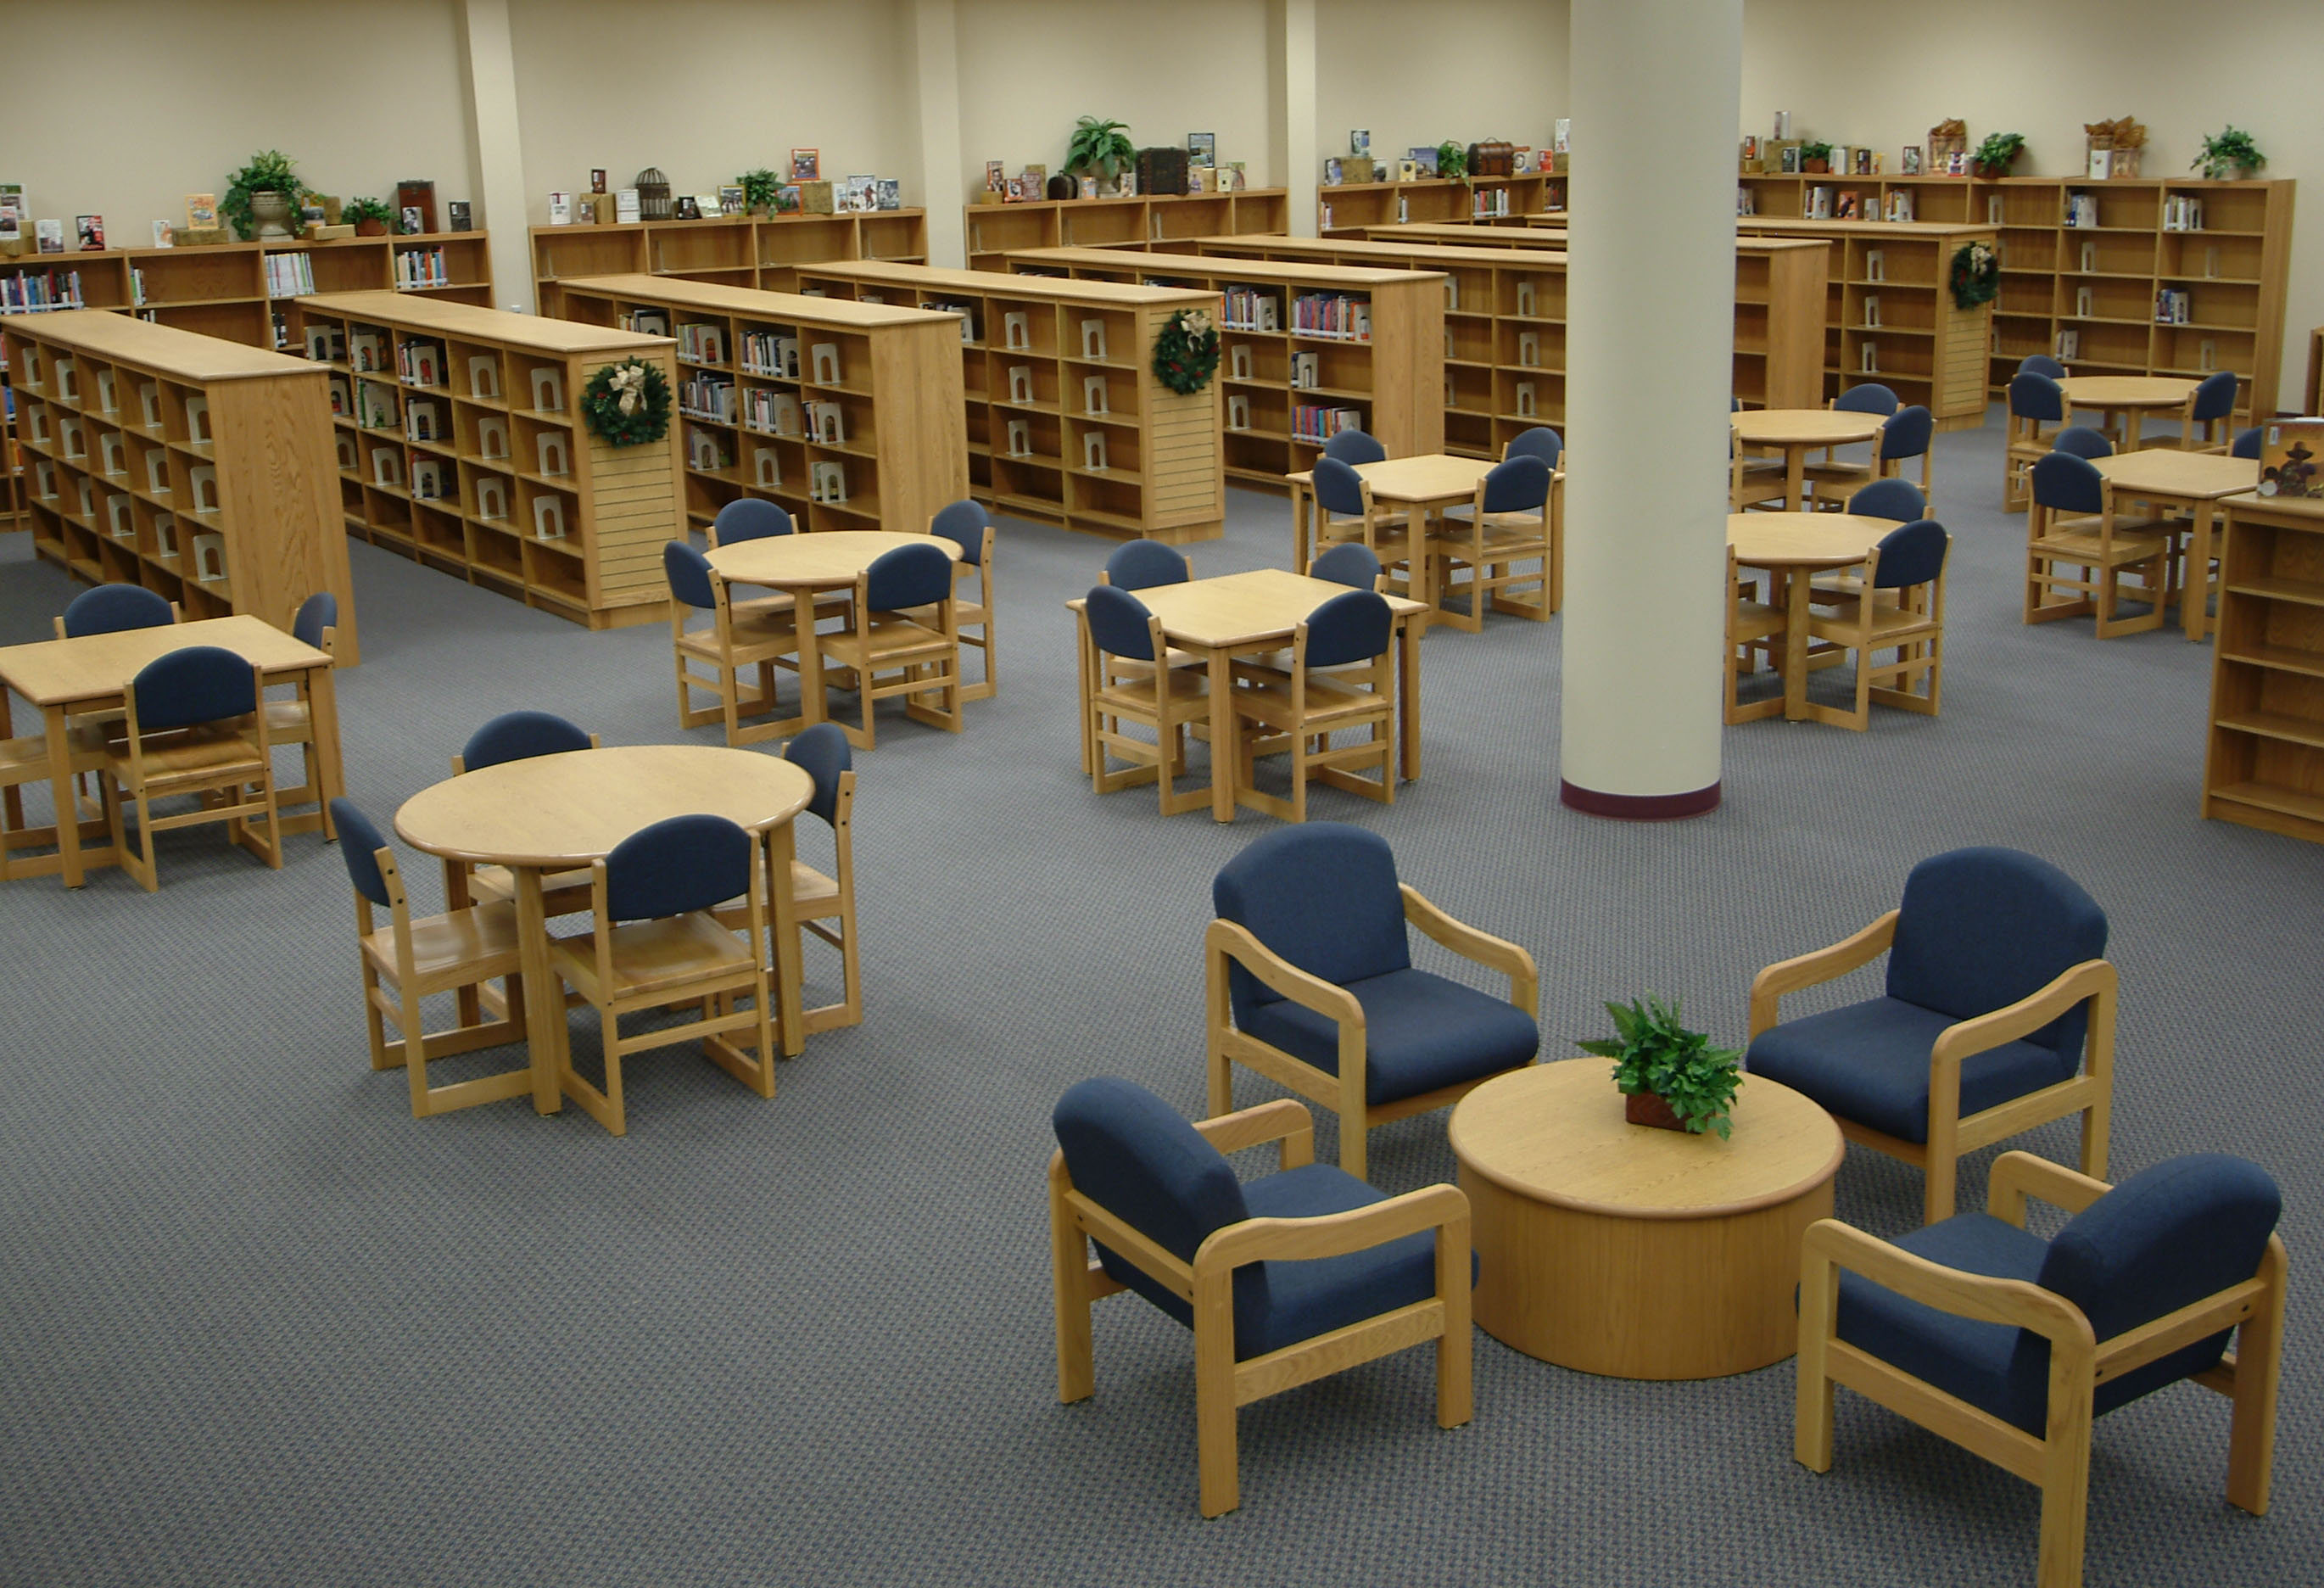 Longo Schools Blog Archive Tesco Library Seating - Library furniture